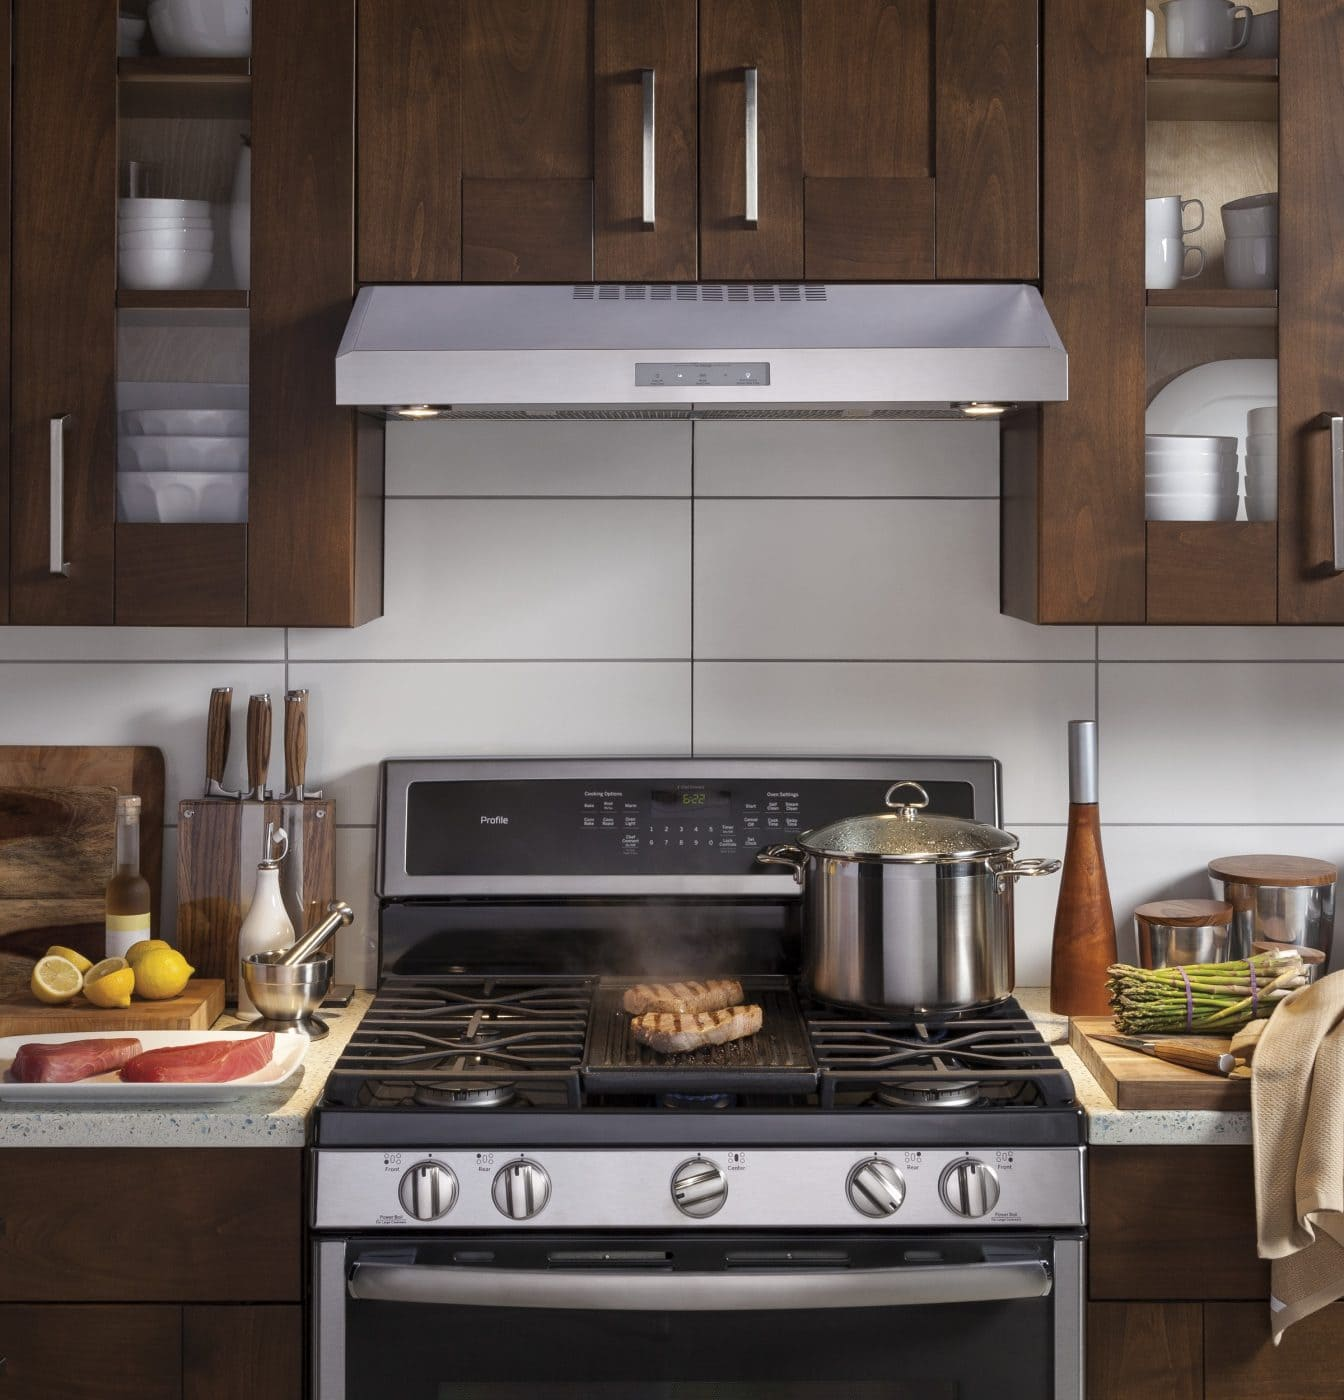 GE Profile Series Gas Range